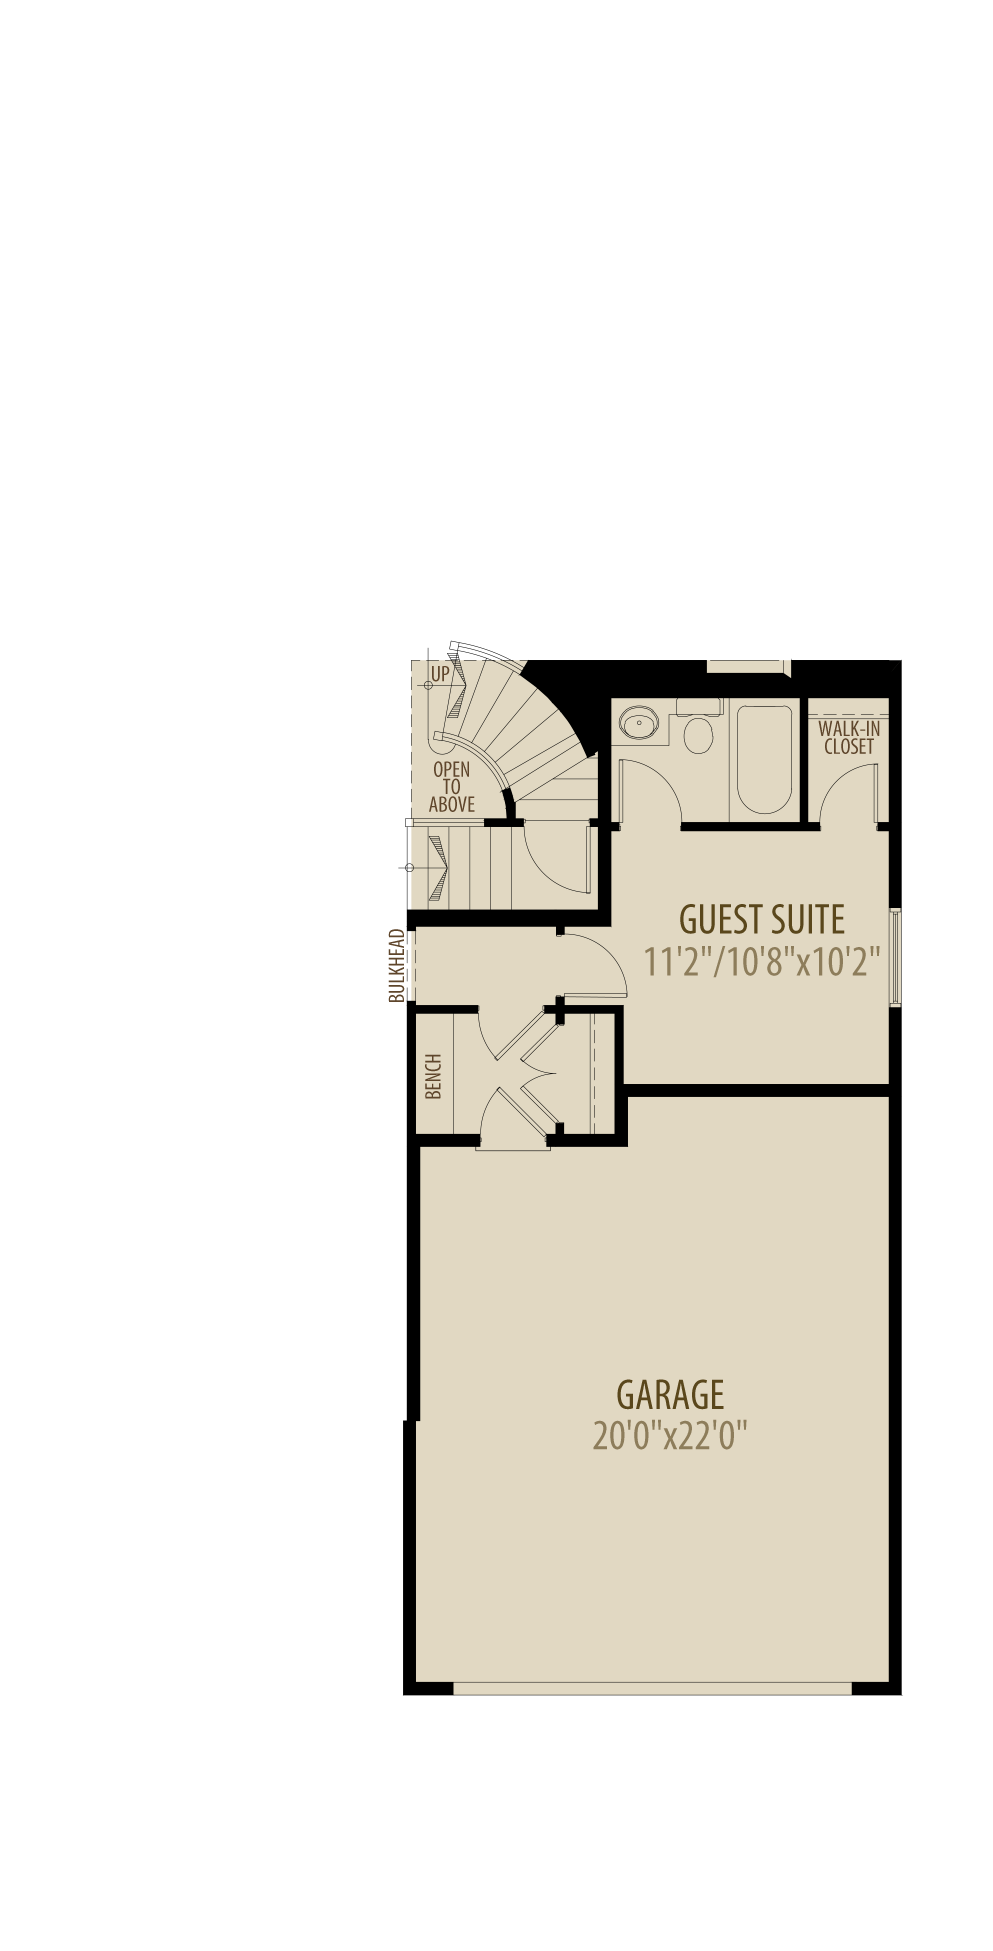 Guest Suite Adds 176Sq Ft